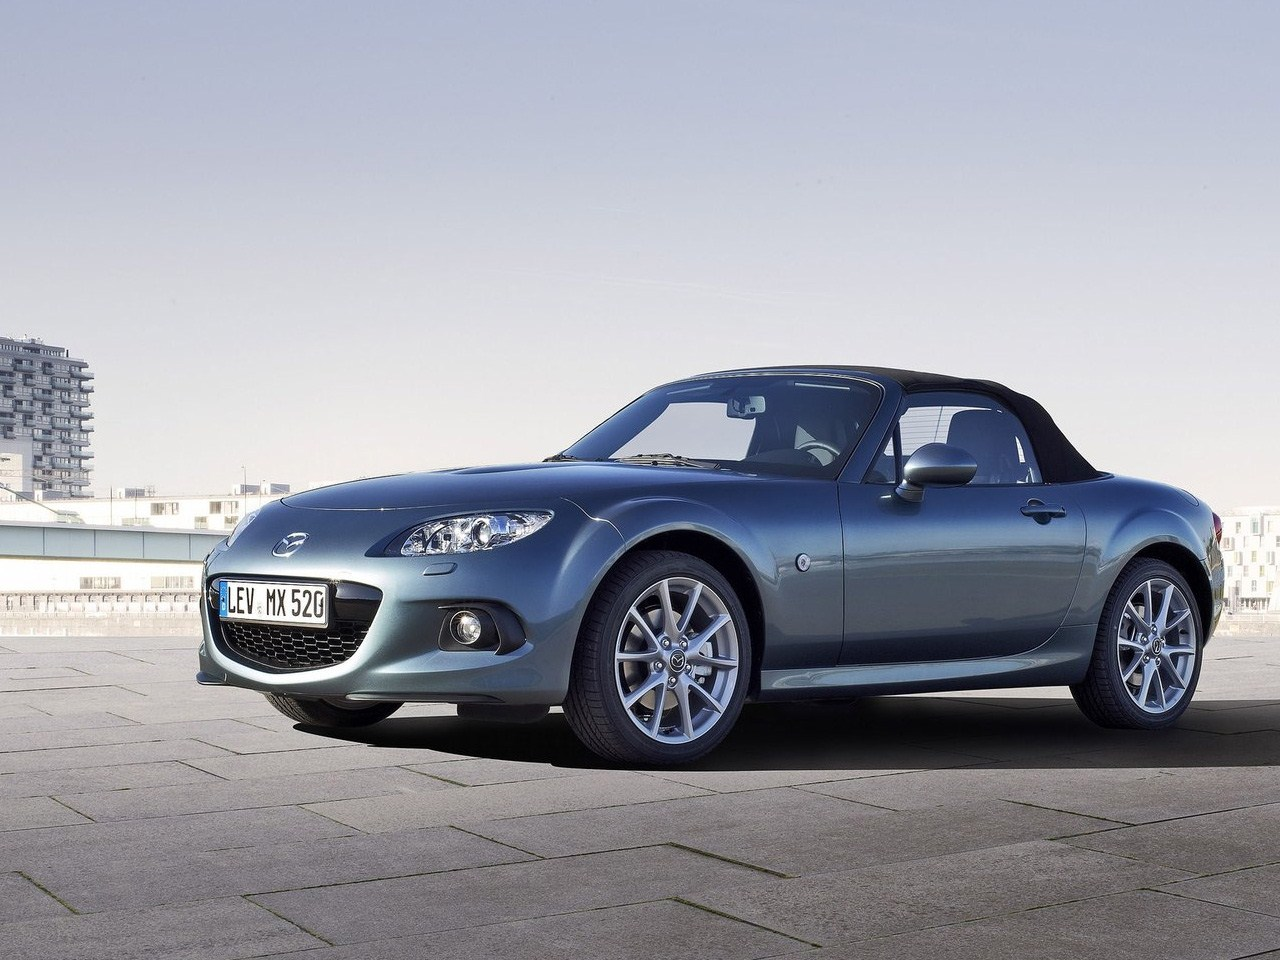 2015 mazda mx 5 muscles car wallpaper intersting things of wallpaper cars. Black Bedroom Furniture Sets. Home Design Ideas